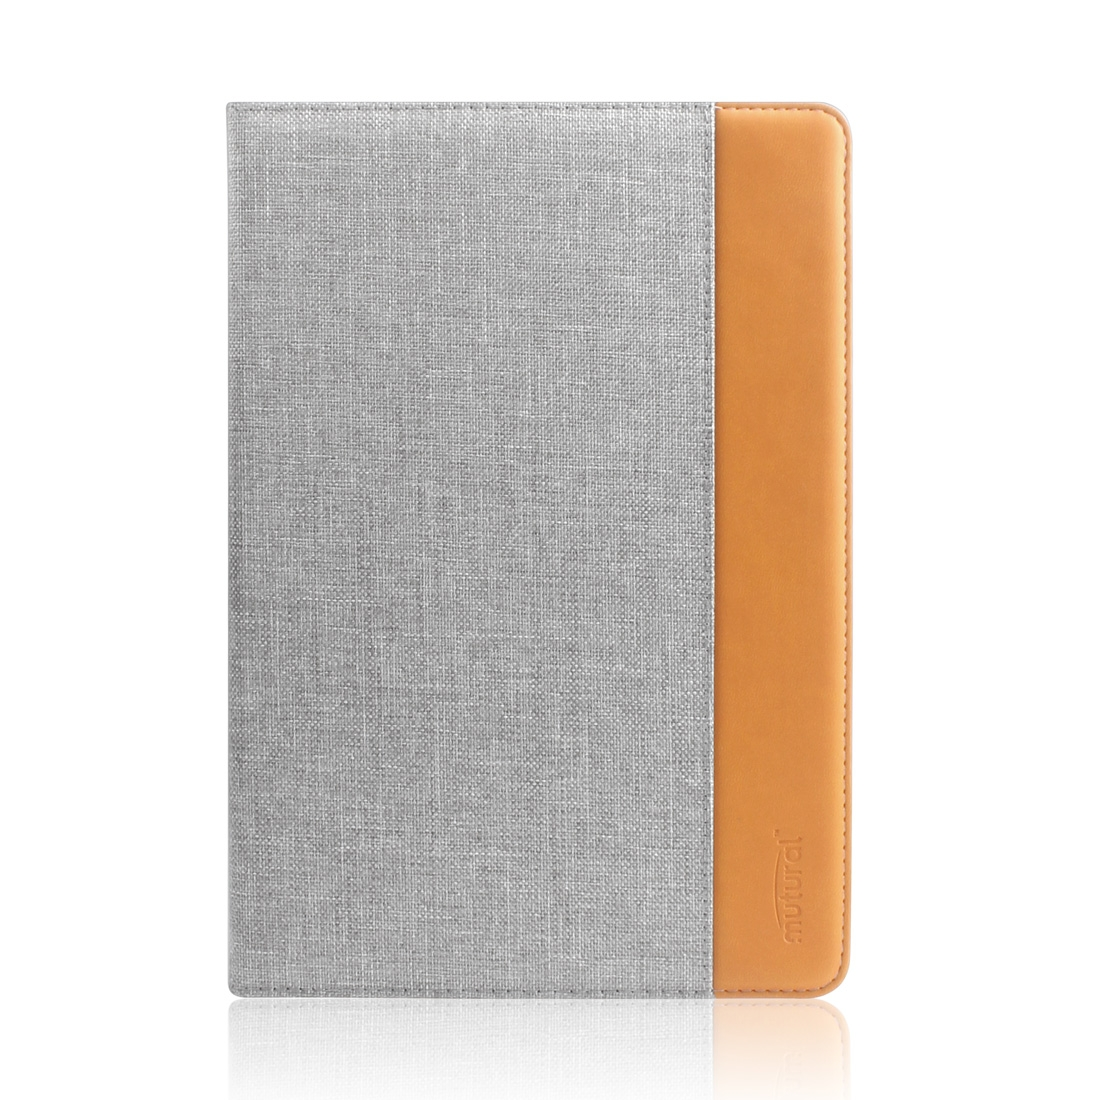 Colorful Artsy PC/Canvas Leather iPad Air 3 Case (10.5 Inch), with Auto Sleep